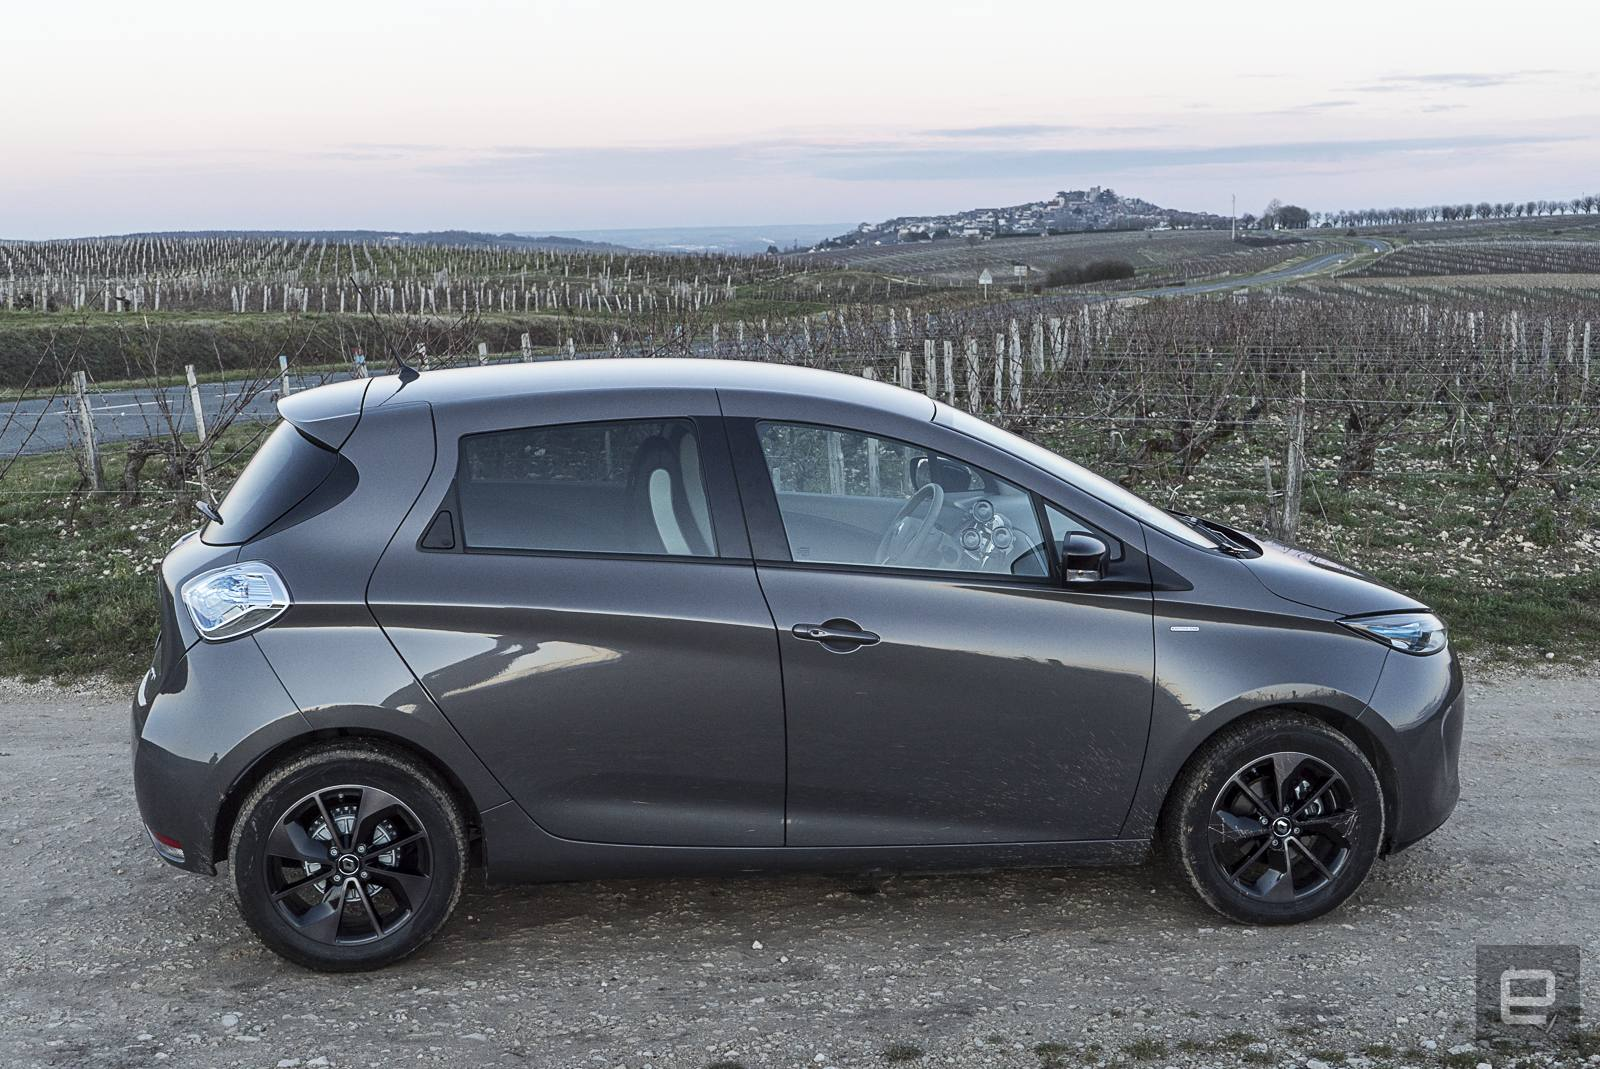 Touring France's EV charging network in the Renault Zoe